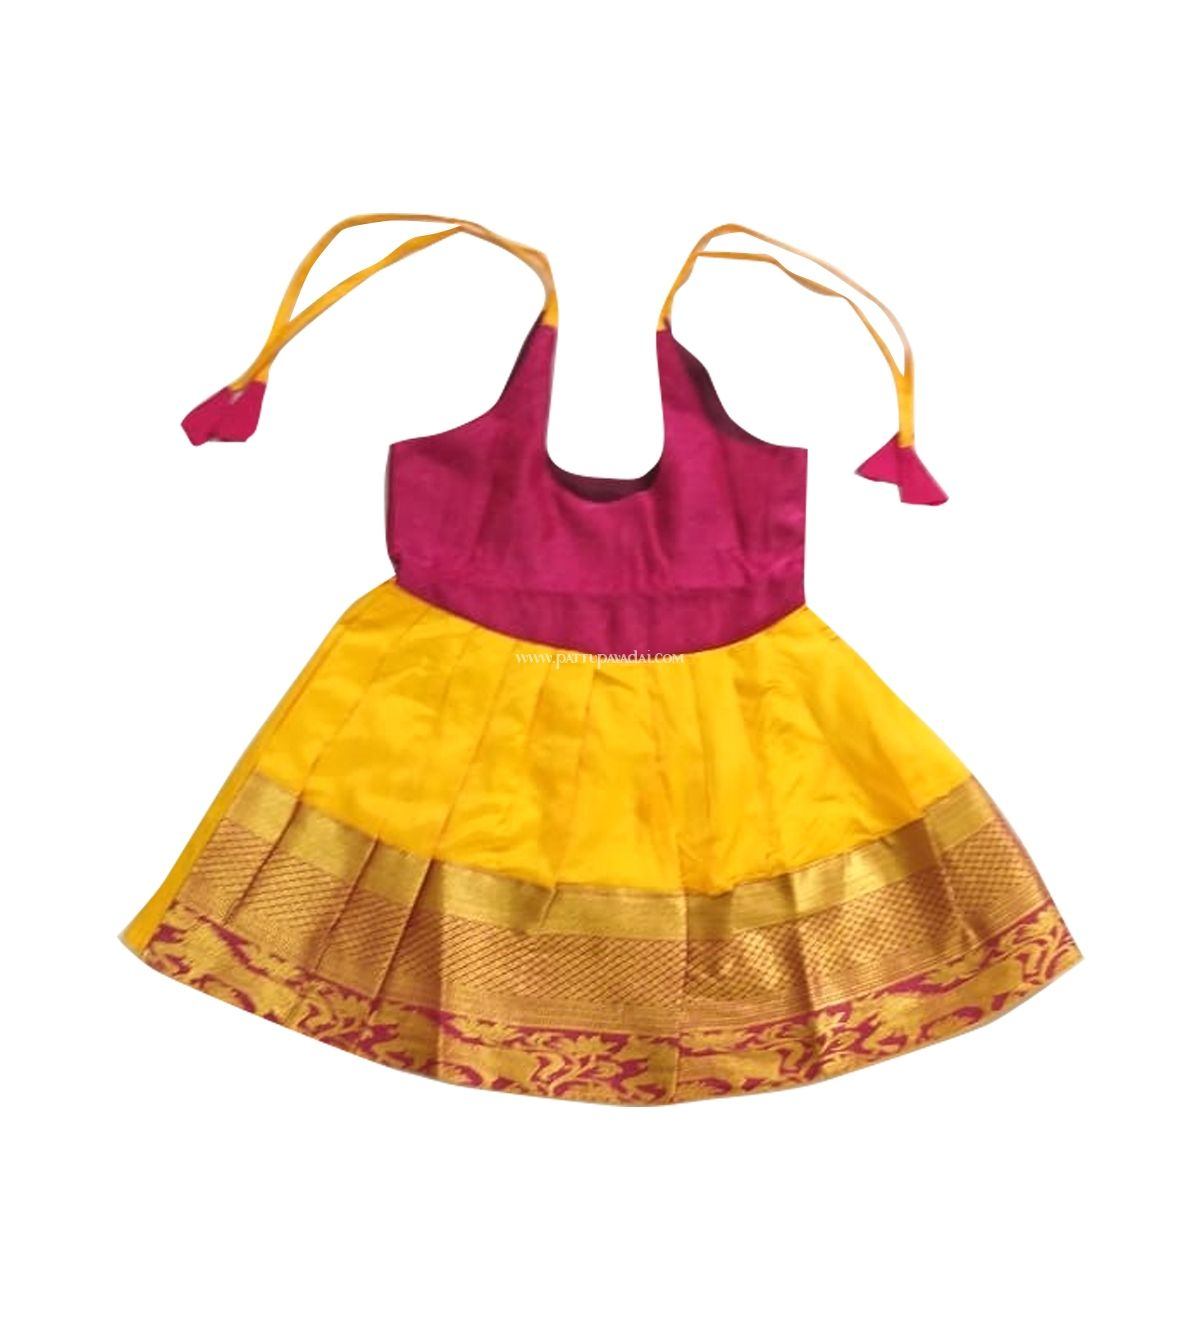 22790d64a20b Elegant readymade traditional yellow and maroon pure silk frock for newborn  3 months baby girl.